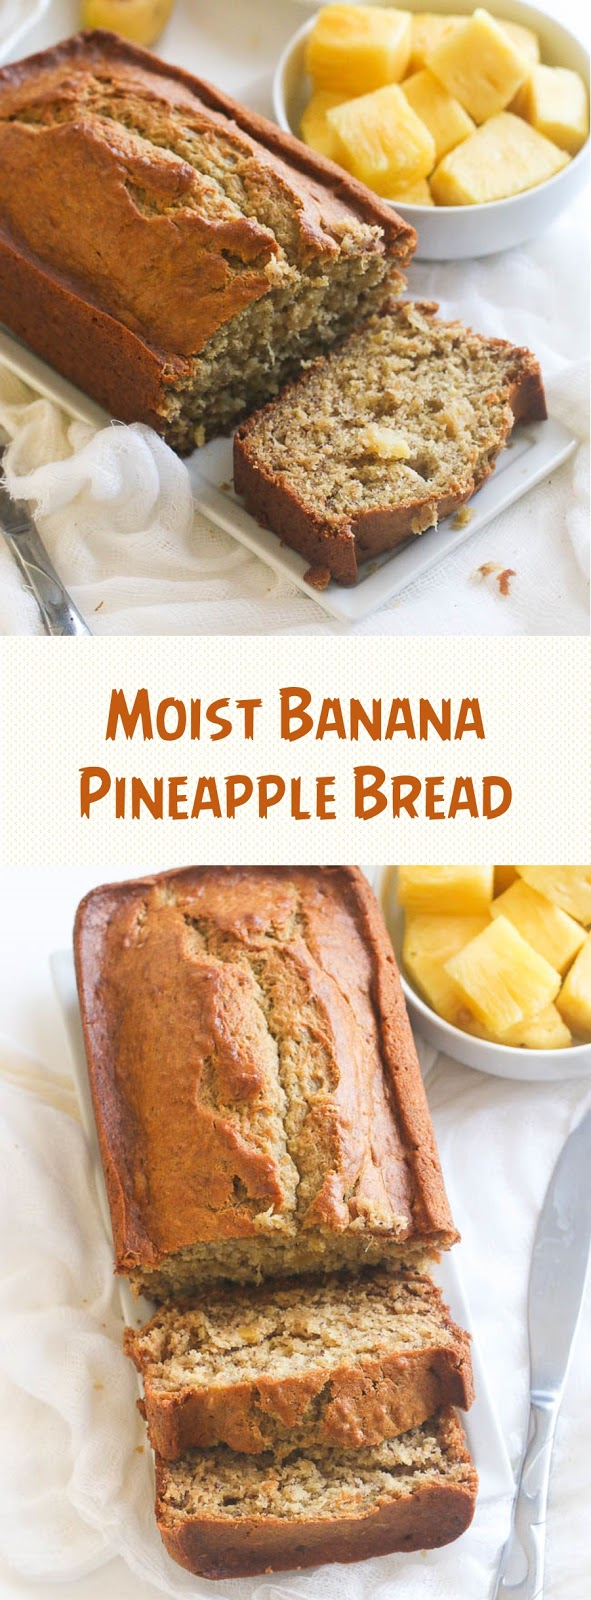 Moist Banana Pineapple Bread